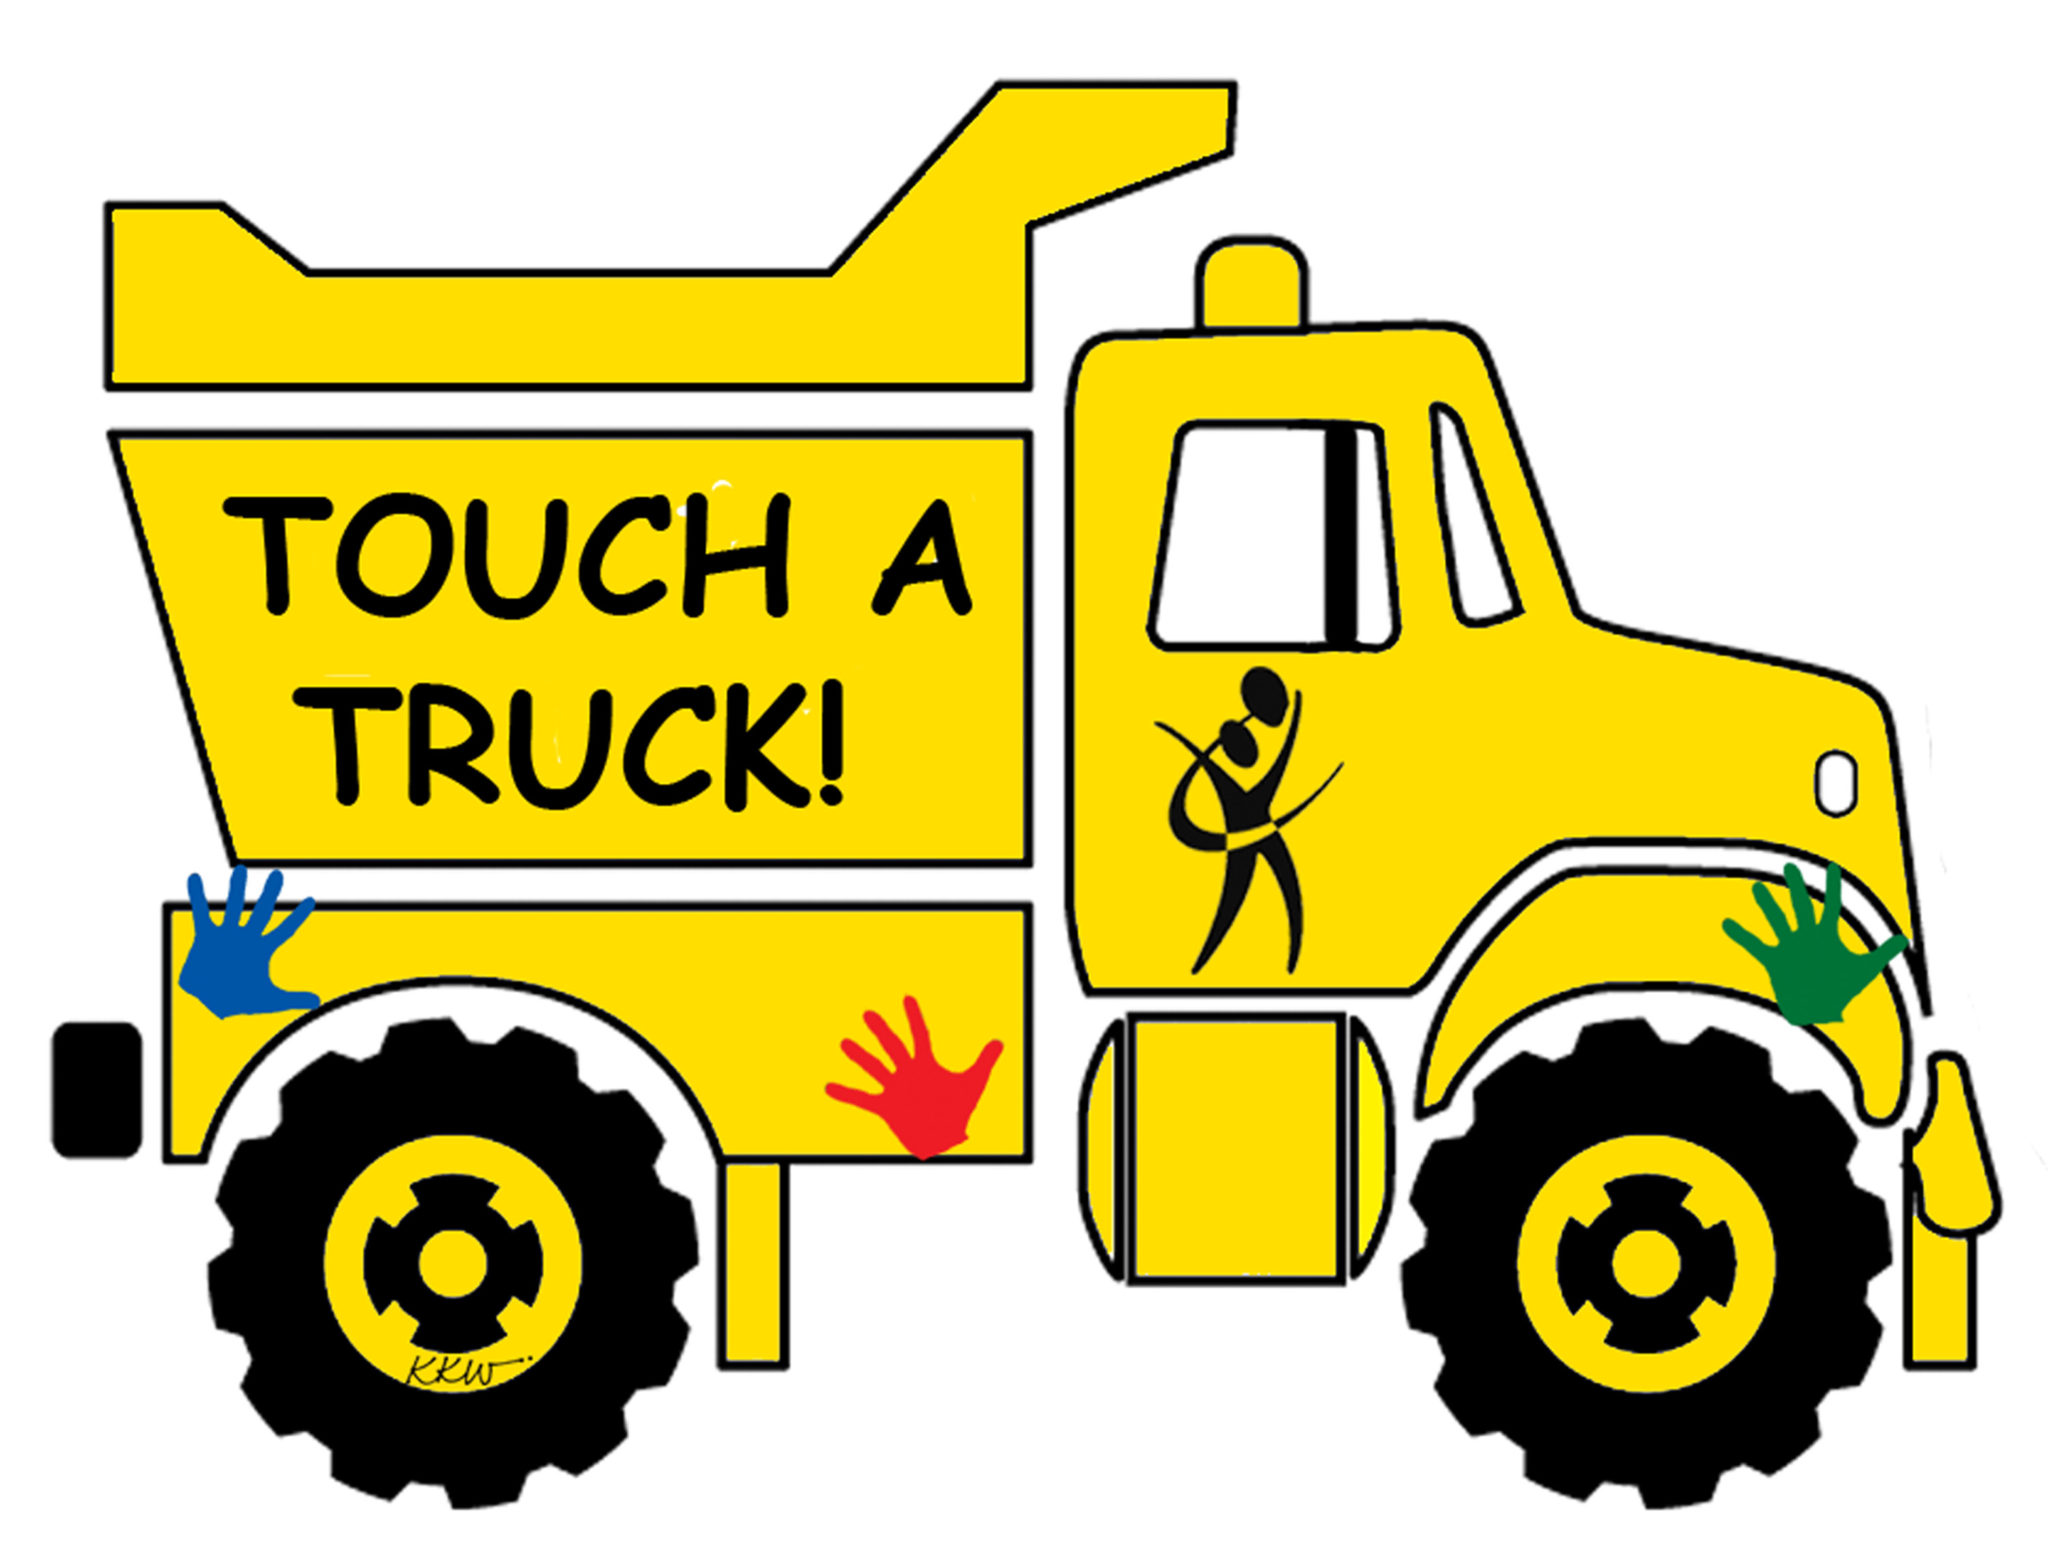 http://887theriver.ca/wp-content/uploads/2017/05/touch-a-truck-LOGO-lg-2.jpg